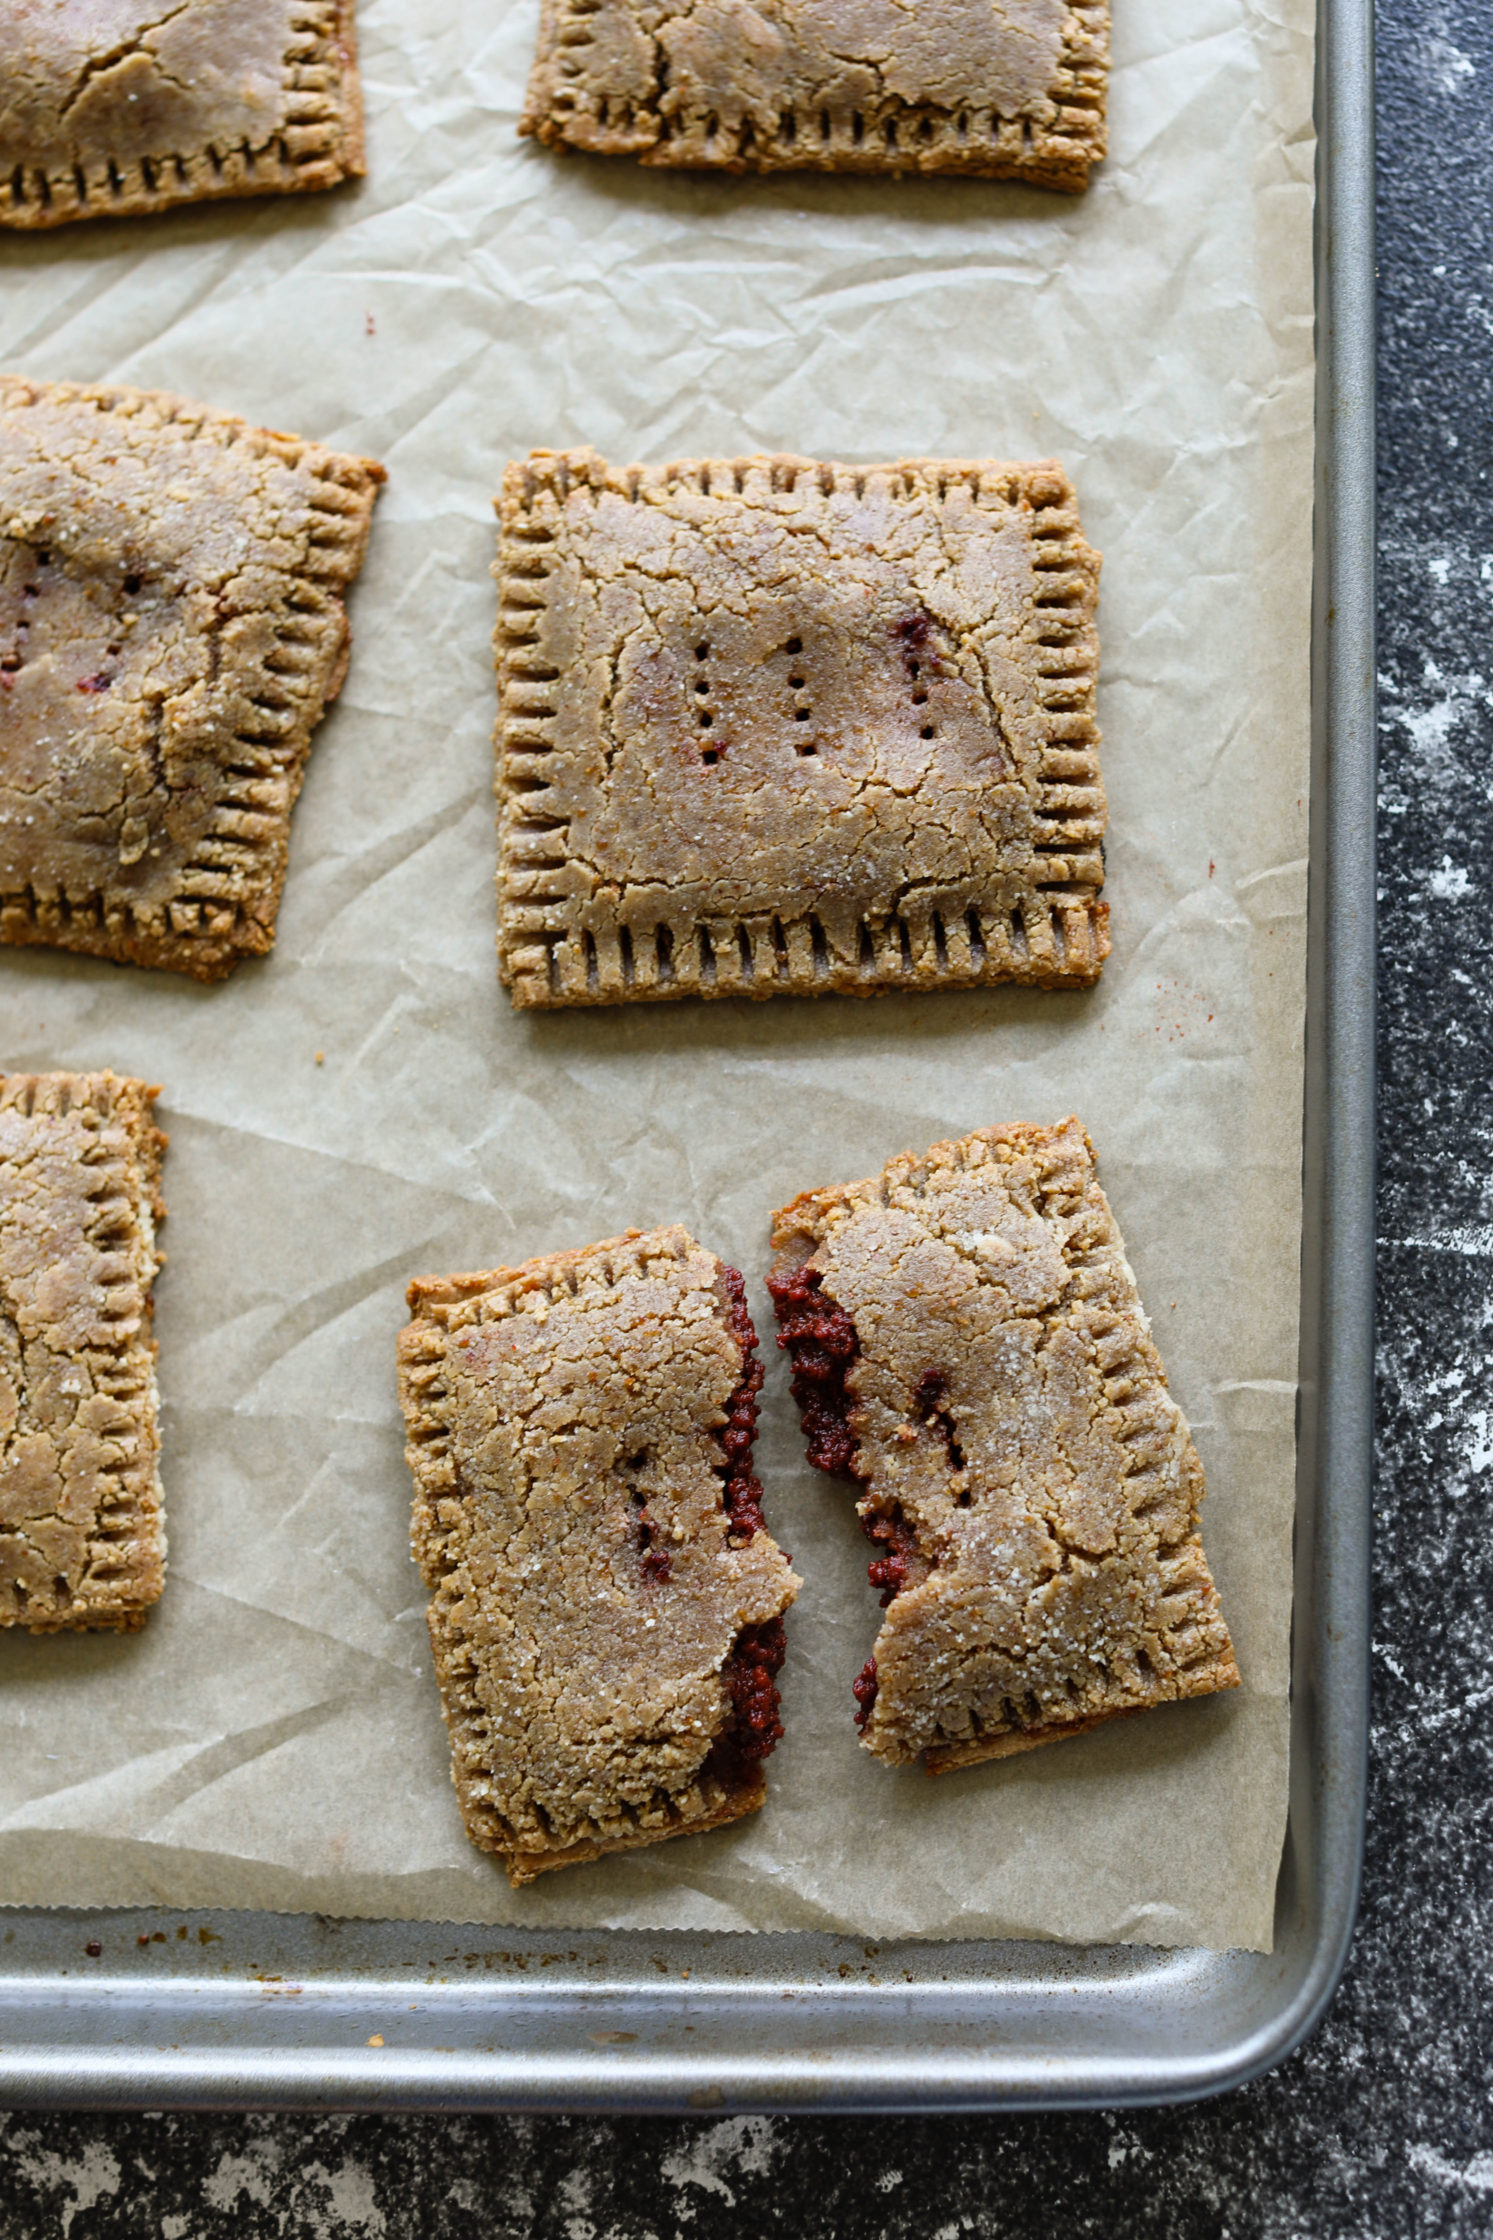 Cherry Almond Flour Pop-Tarts baked